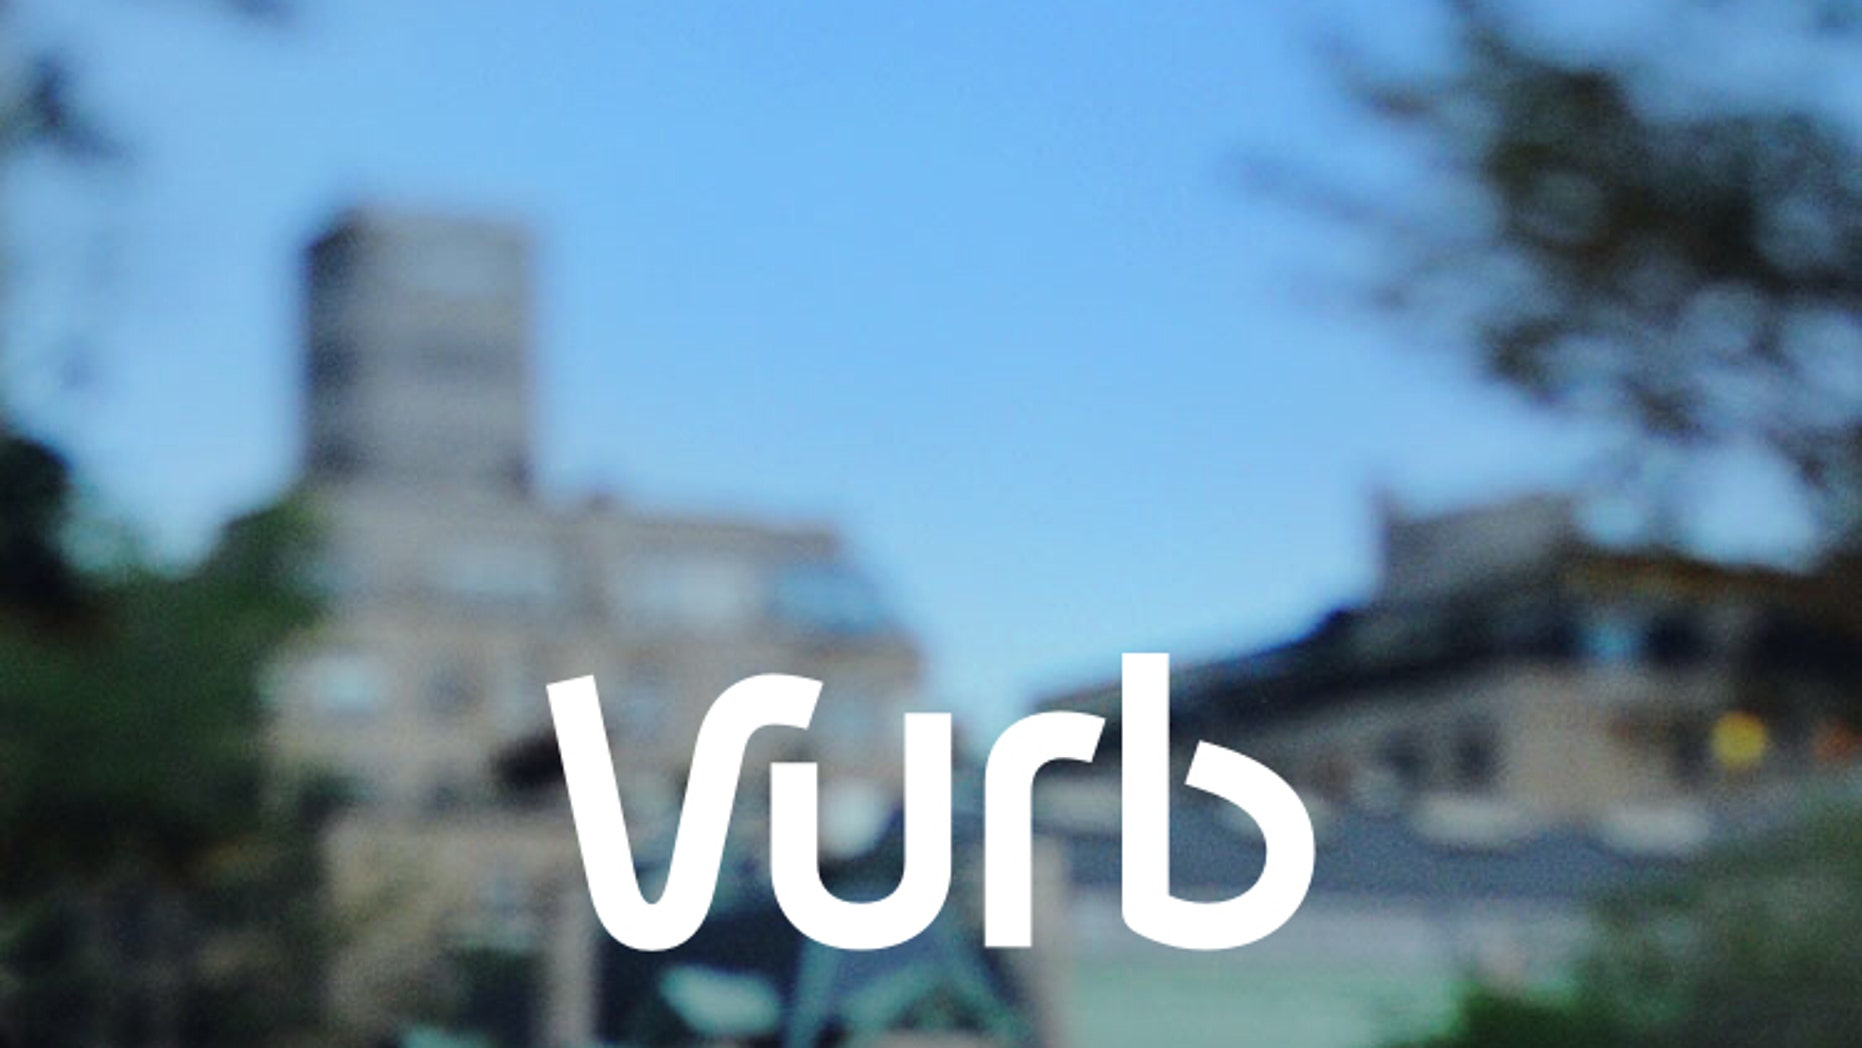 Vurb screenshot.